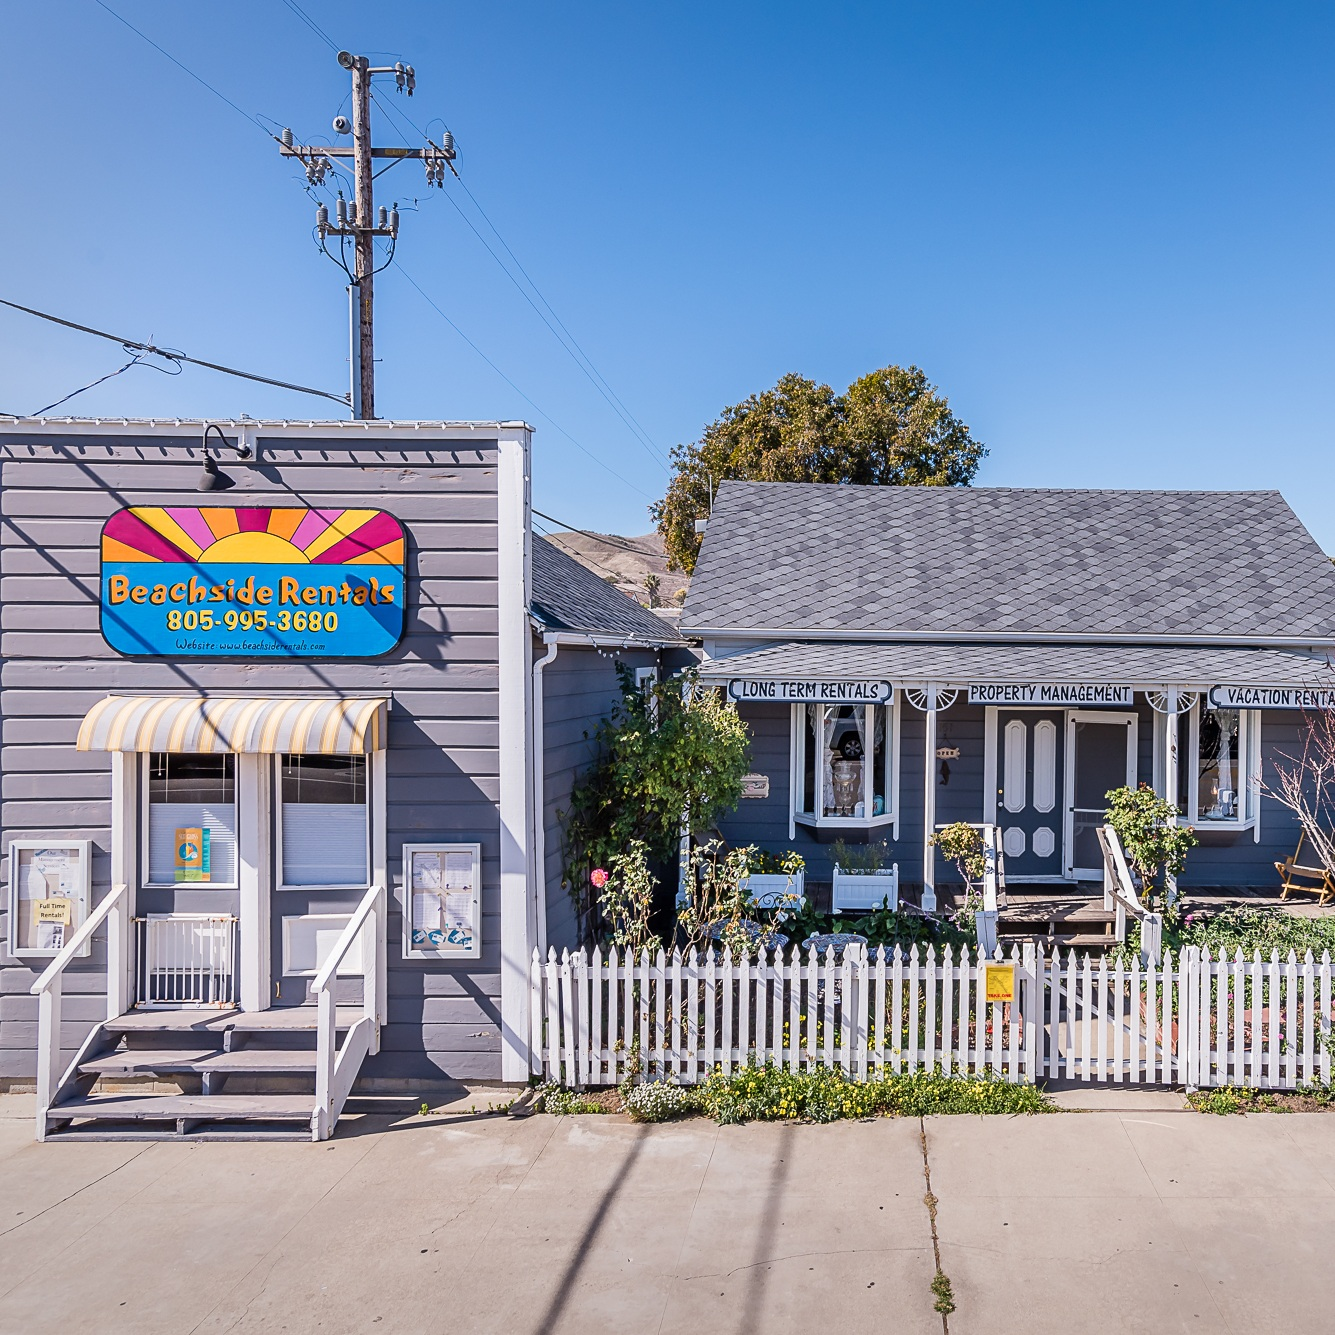 BEACHSIDE RENTALS - Property Management, Full Time Rentals, and Vacation Rentals151 Cayucos Drive805-995-3680 Toll Free: 800-995-3680vacation@beachsiderentals.com